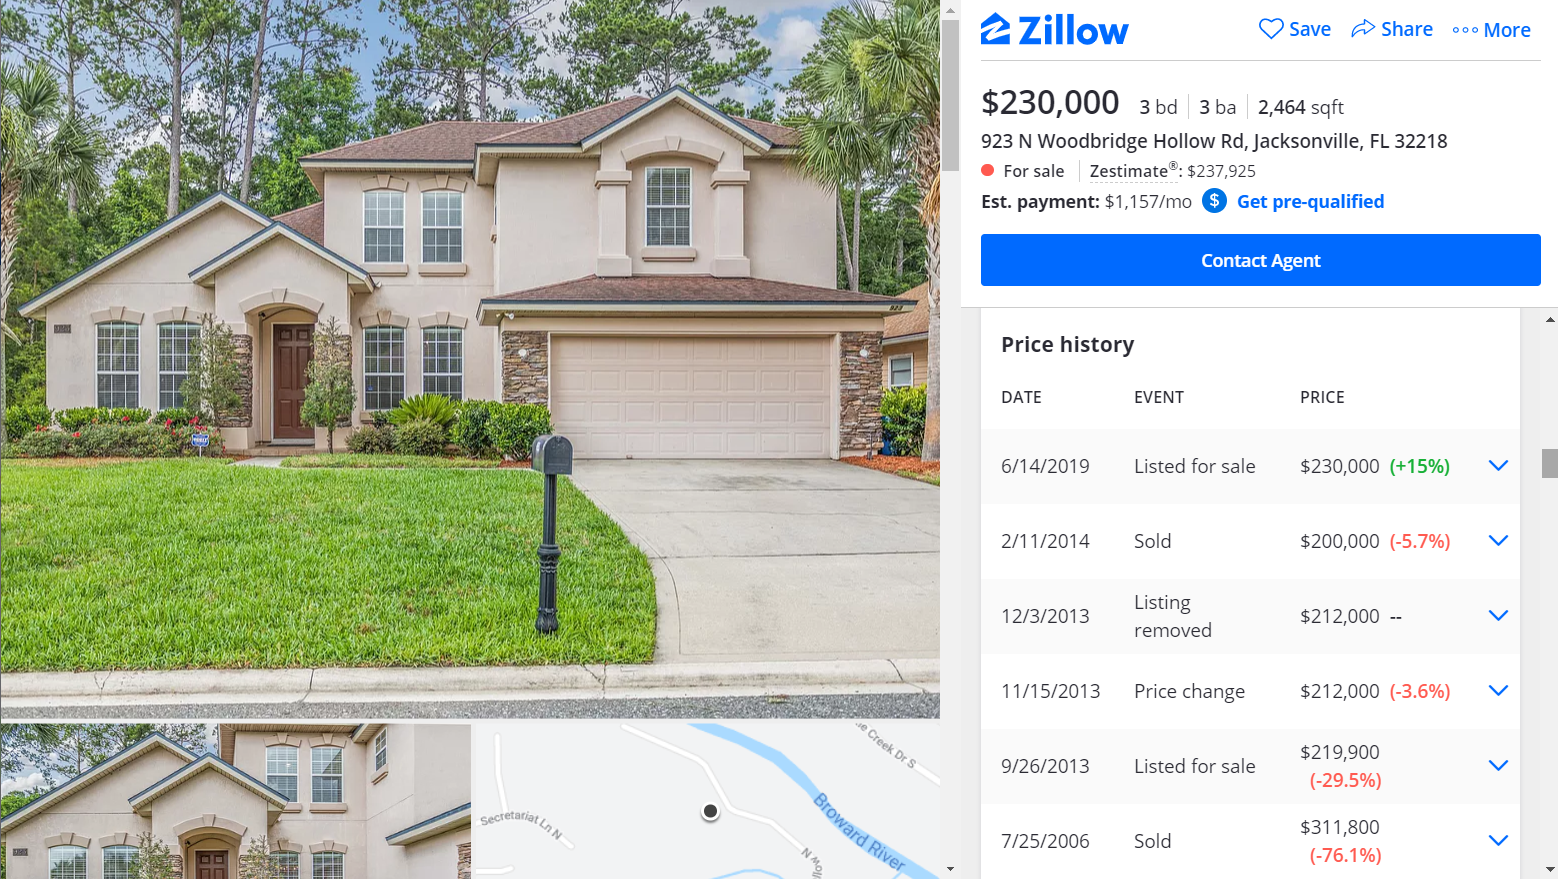 zillow jacksonville fl home rental mortgage analysis - navy to navy homes